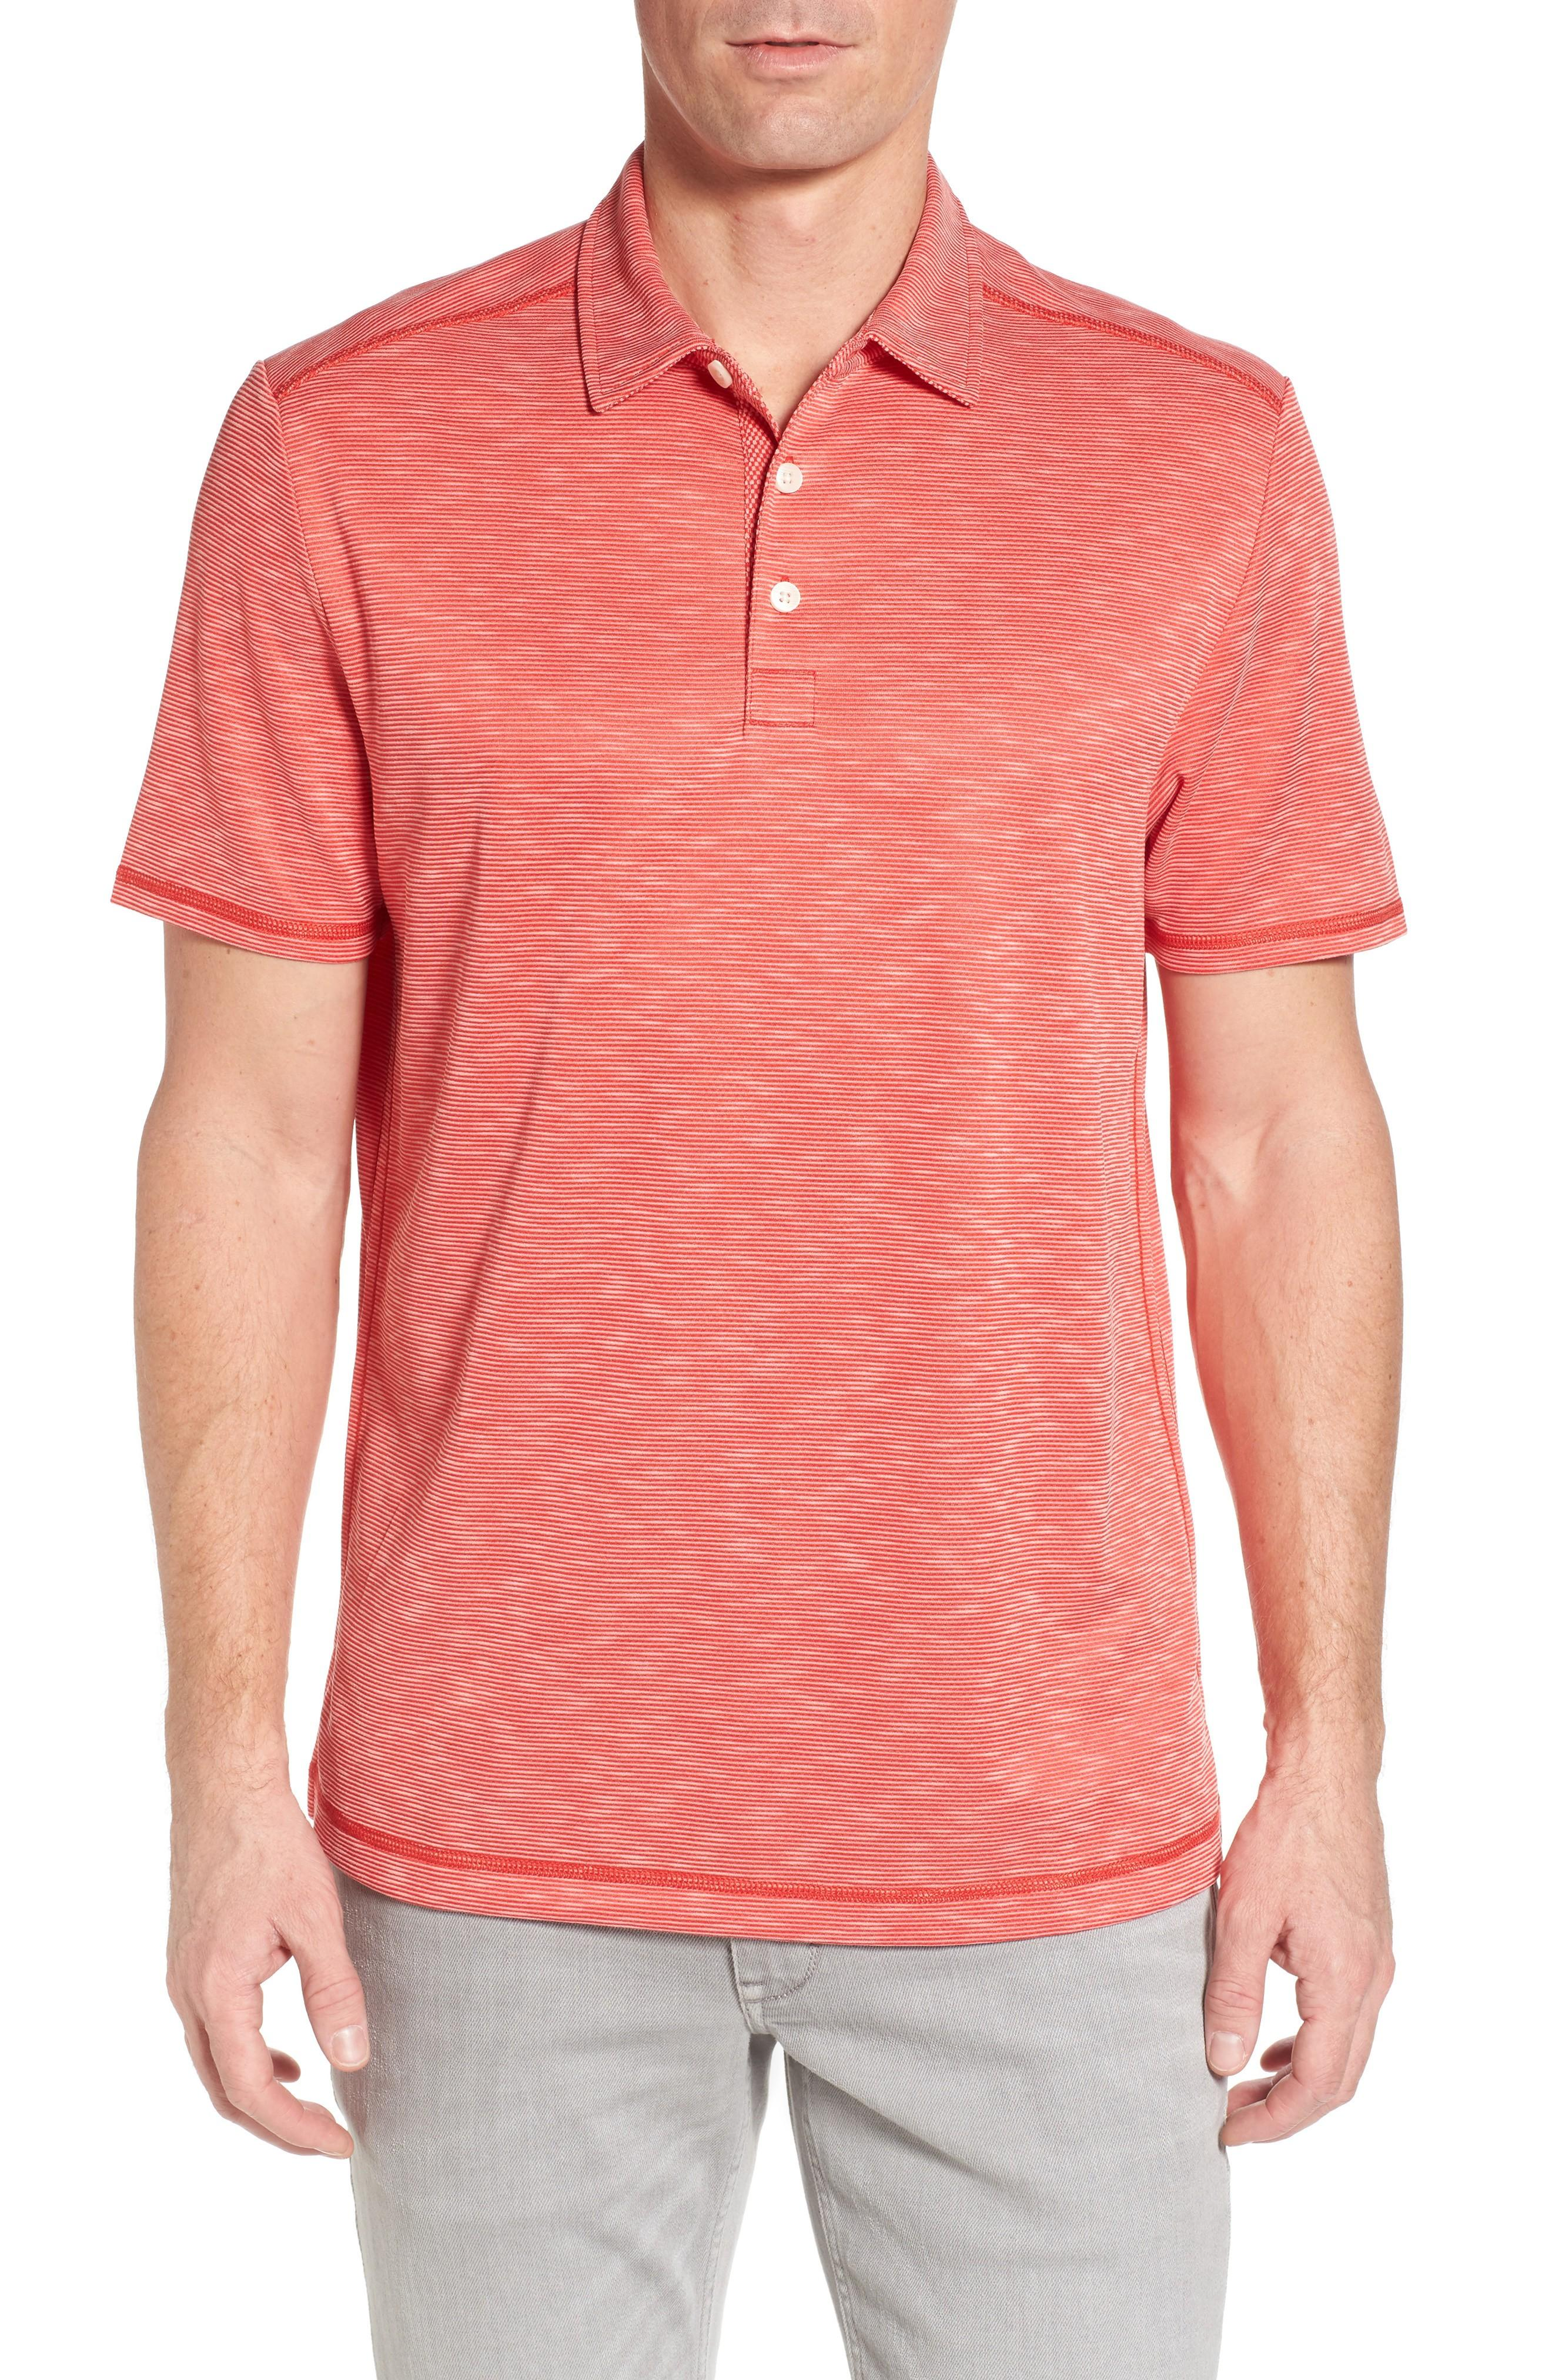 Tommy Bahama New Double Tempo Spectator Jersey Polo In Cherry Tomato